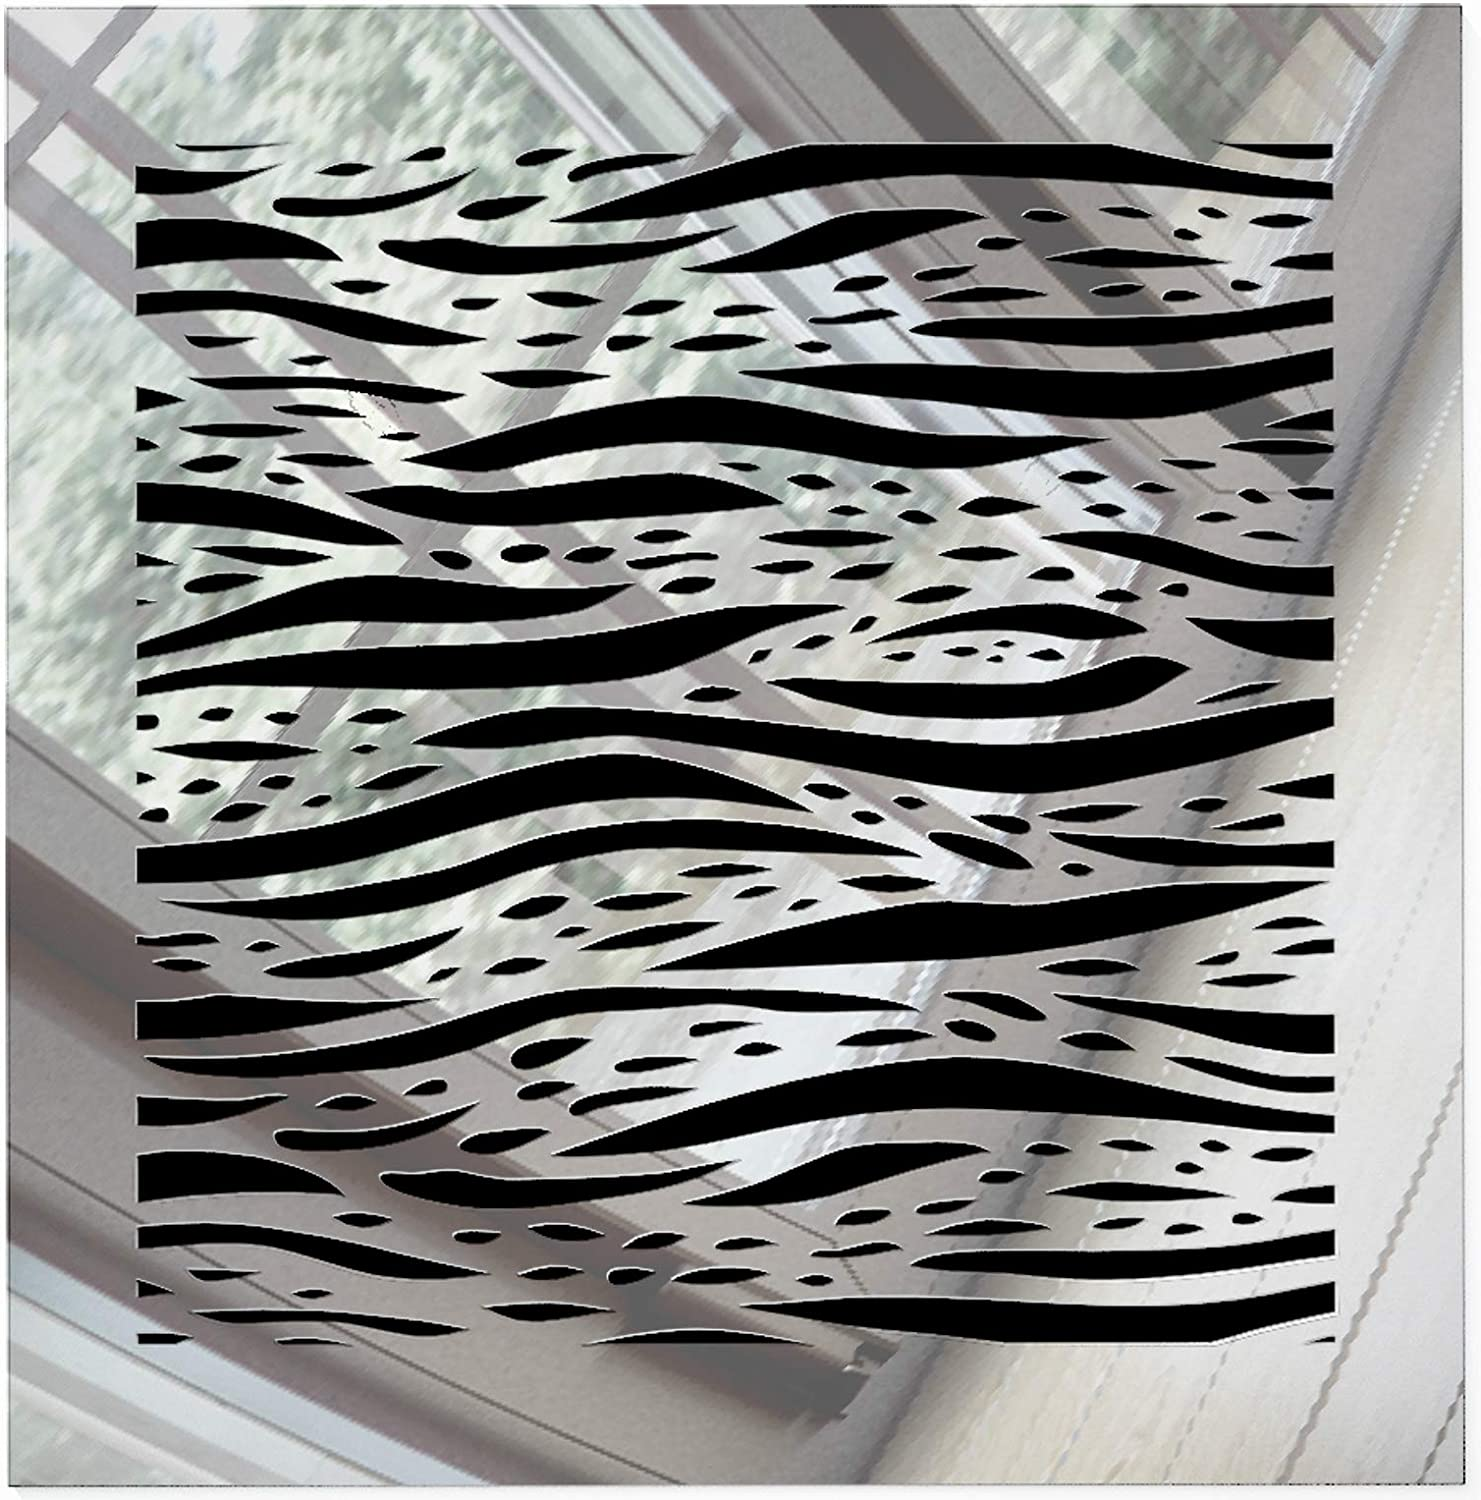 """SABA Register Cover Air Vent - Acrylic Fiberglass Grille 8"""" x 8"""" Duct Opening (10"""" x""""10 Overall) Mirror Finish Decorative Cover for Walls & Ceilings, not for Floor use, Waves"""